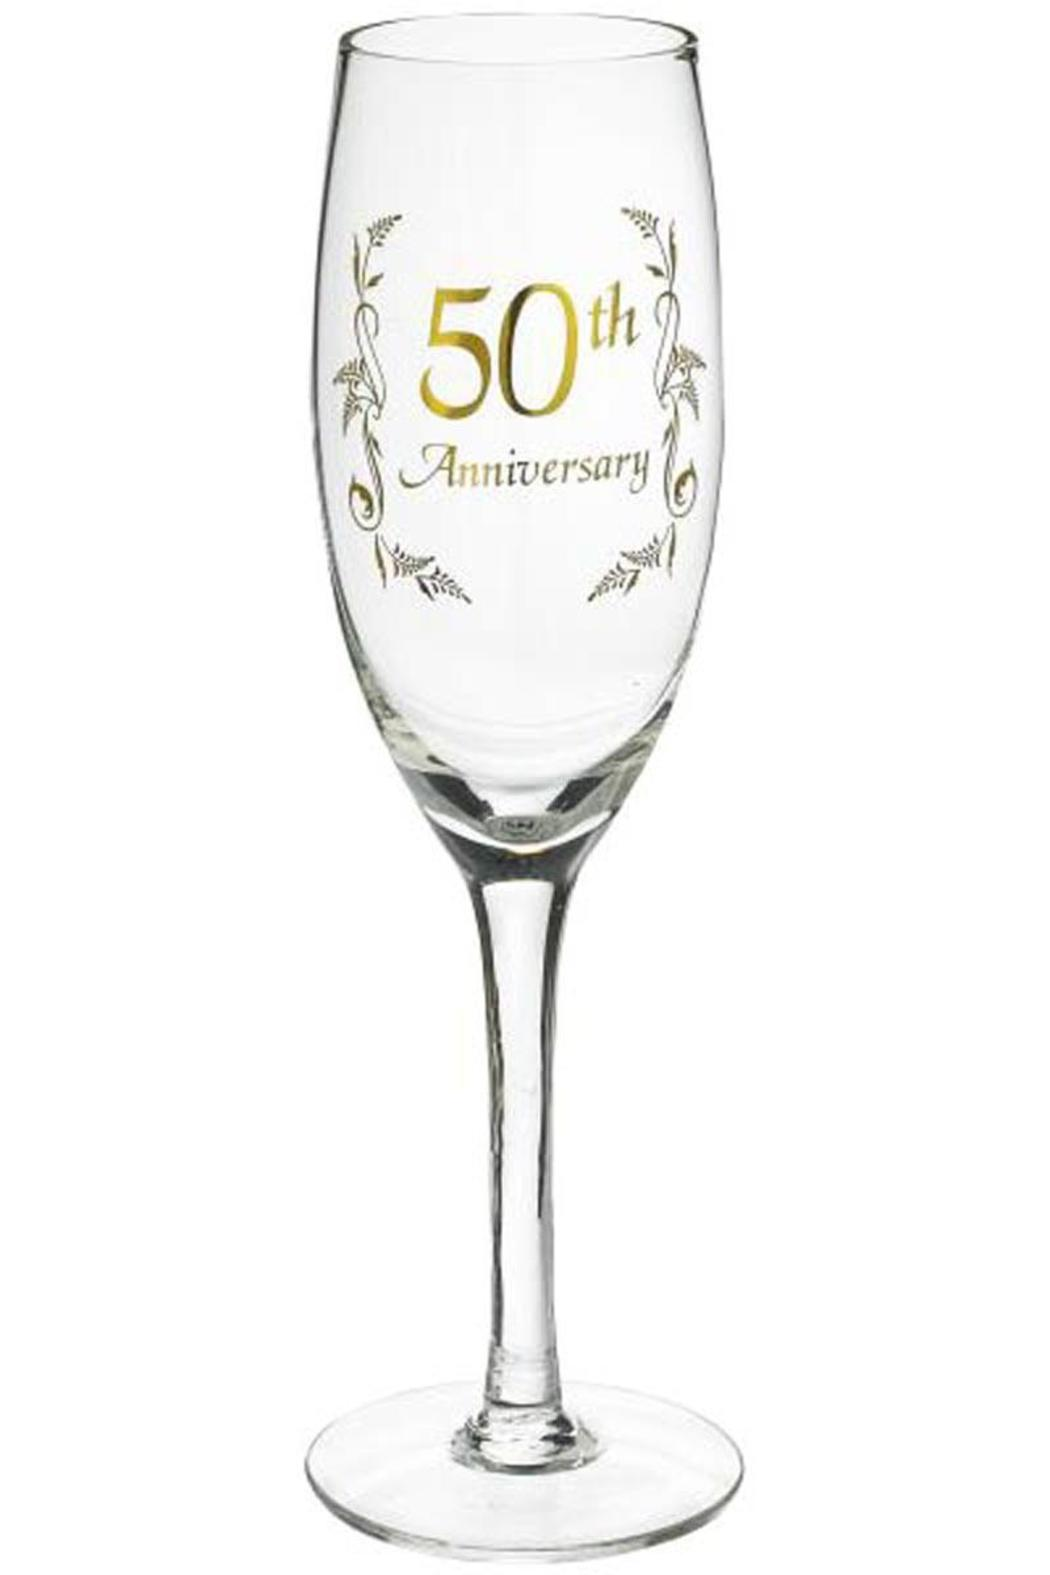 Ganz 50th Anniversary Champagne Glass from Alabama by